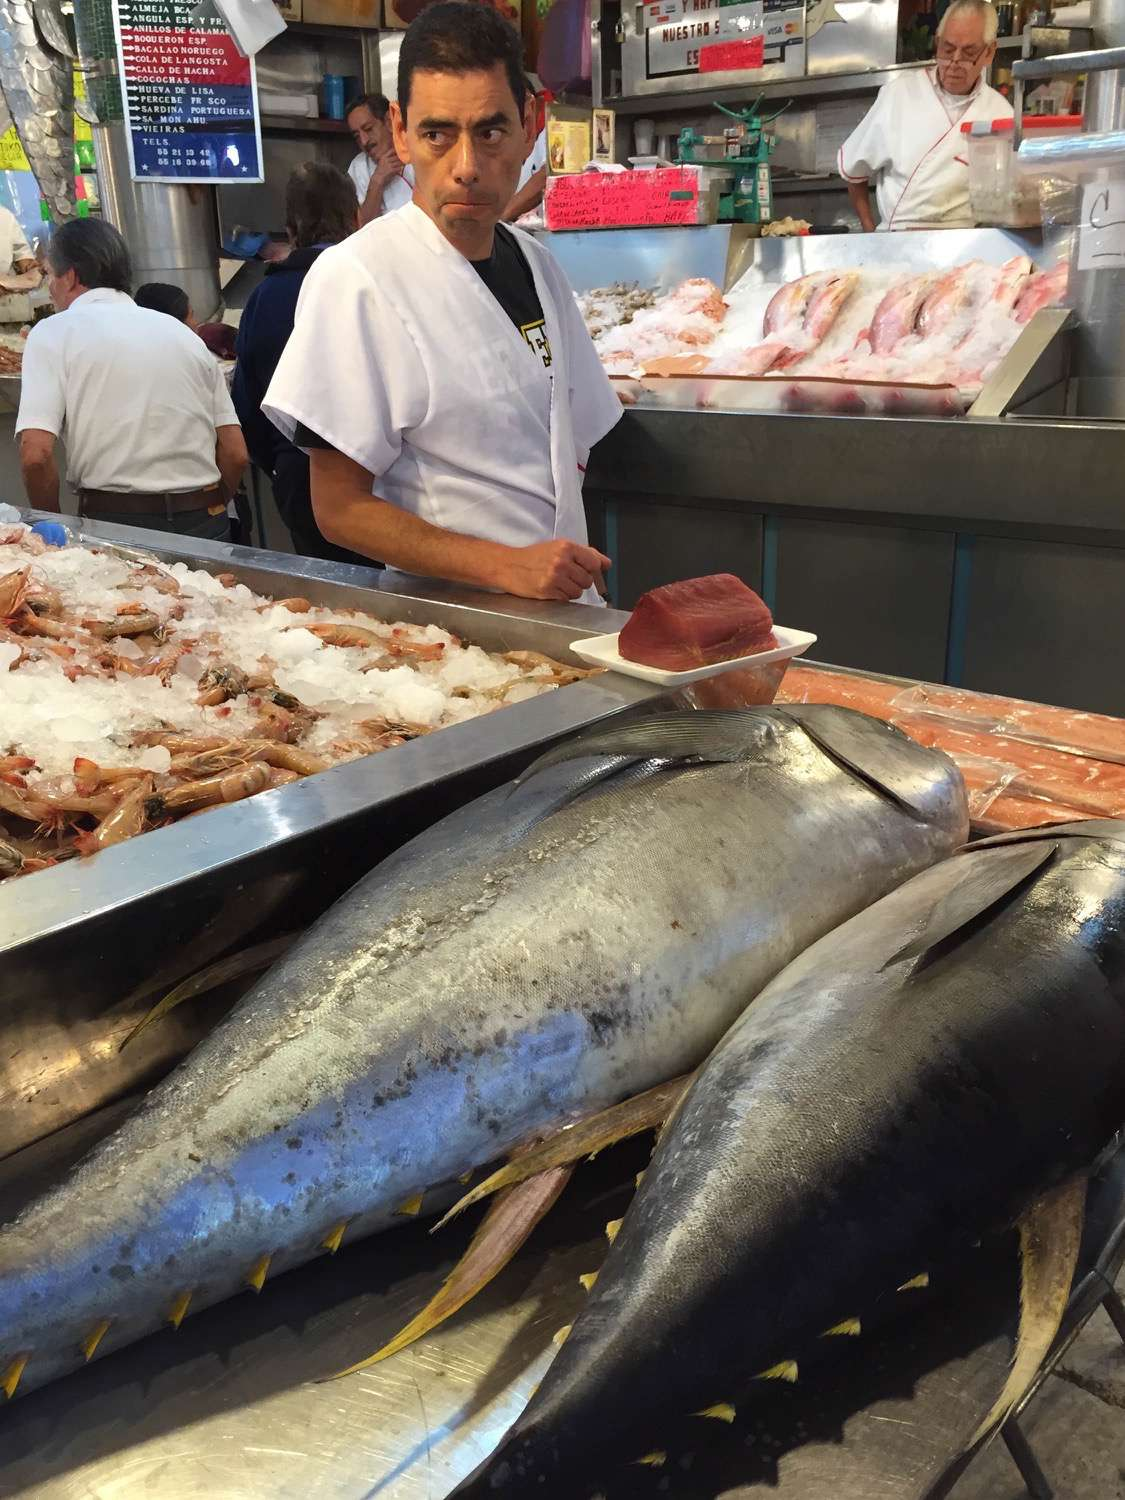 It may be an inland city, but there is plenty of great, fresh seafood to be found in Mexico City.